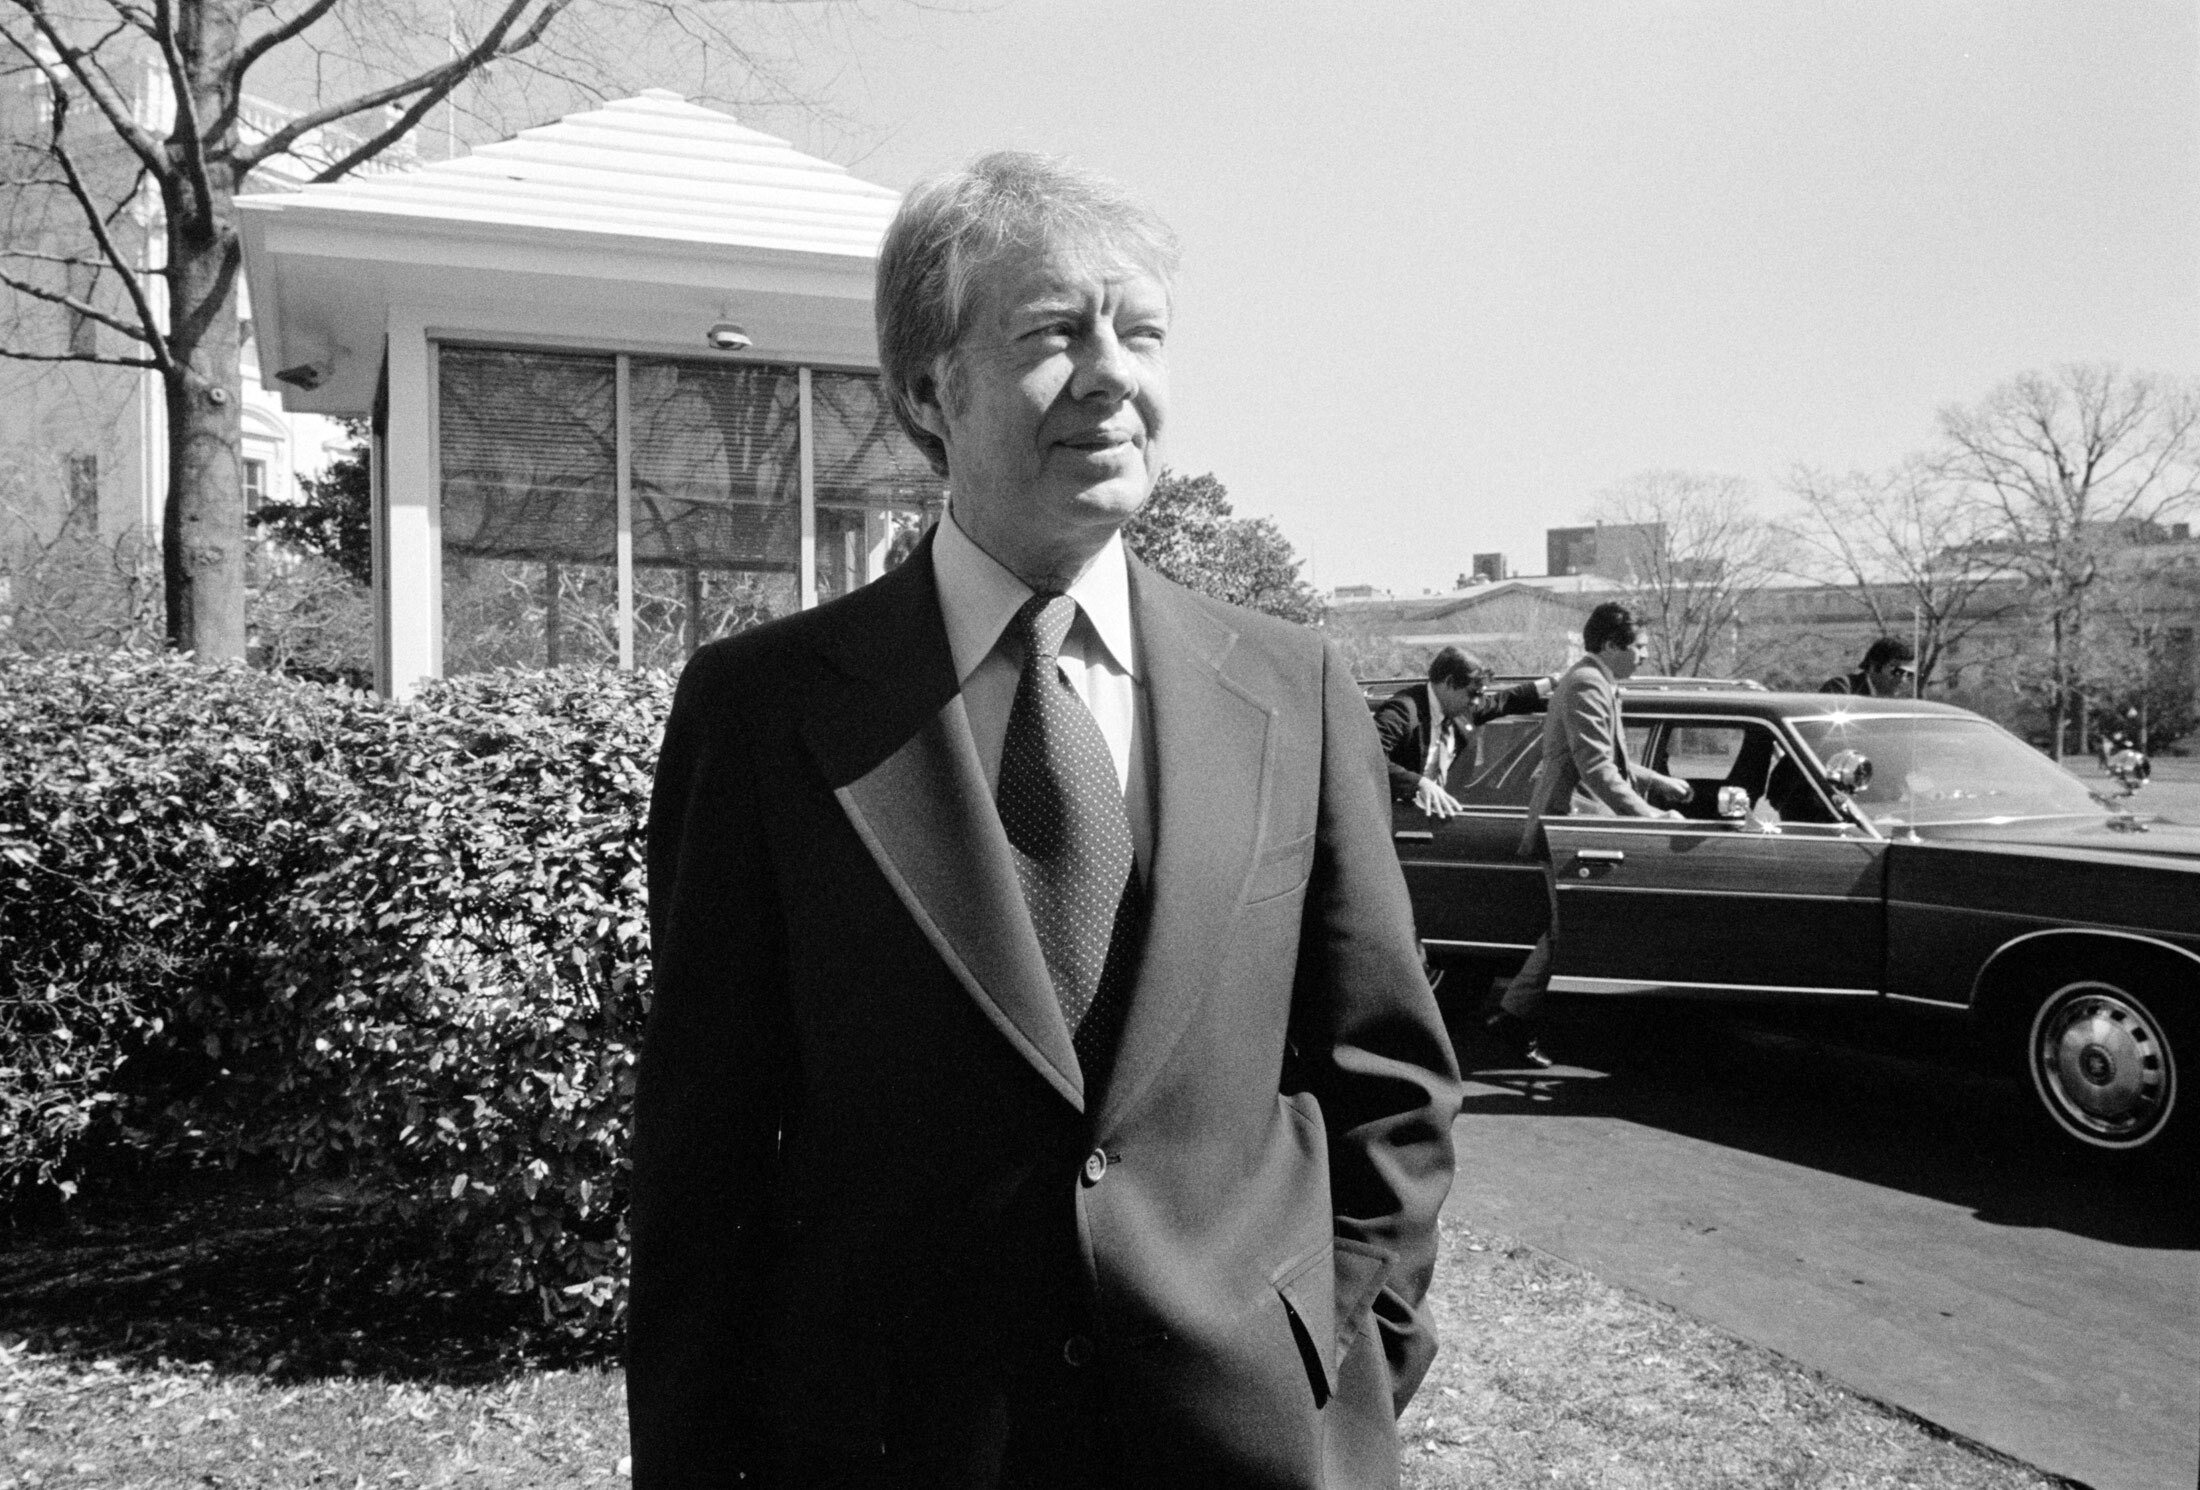 Jimmy Carter and the Malaise Days